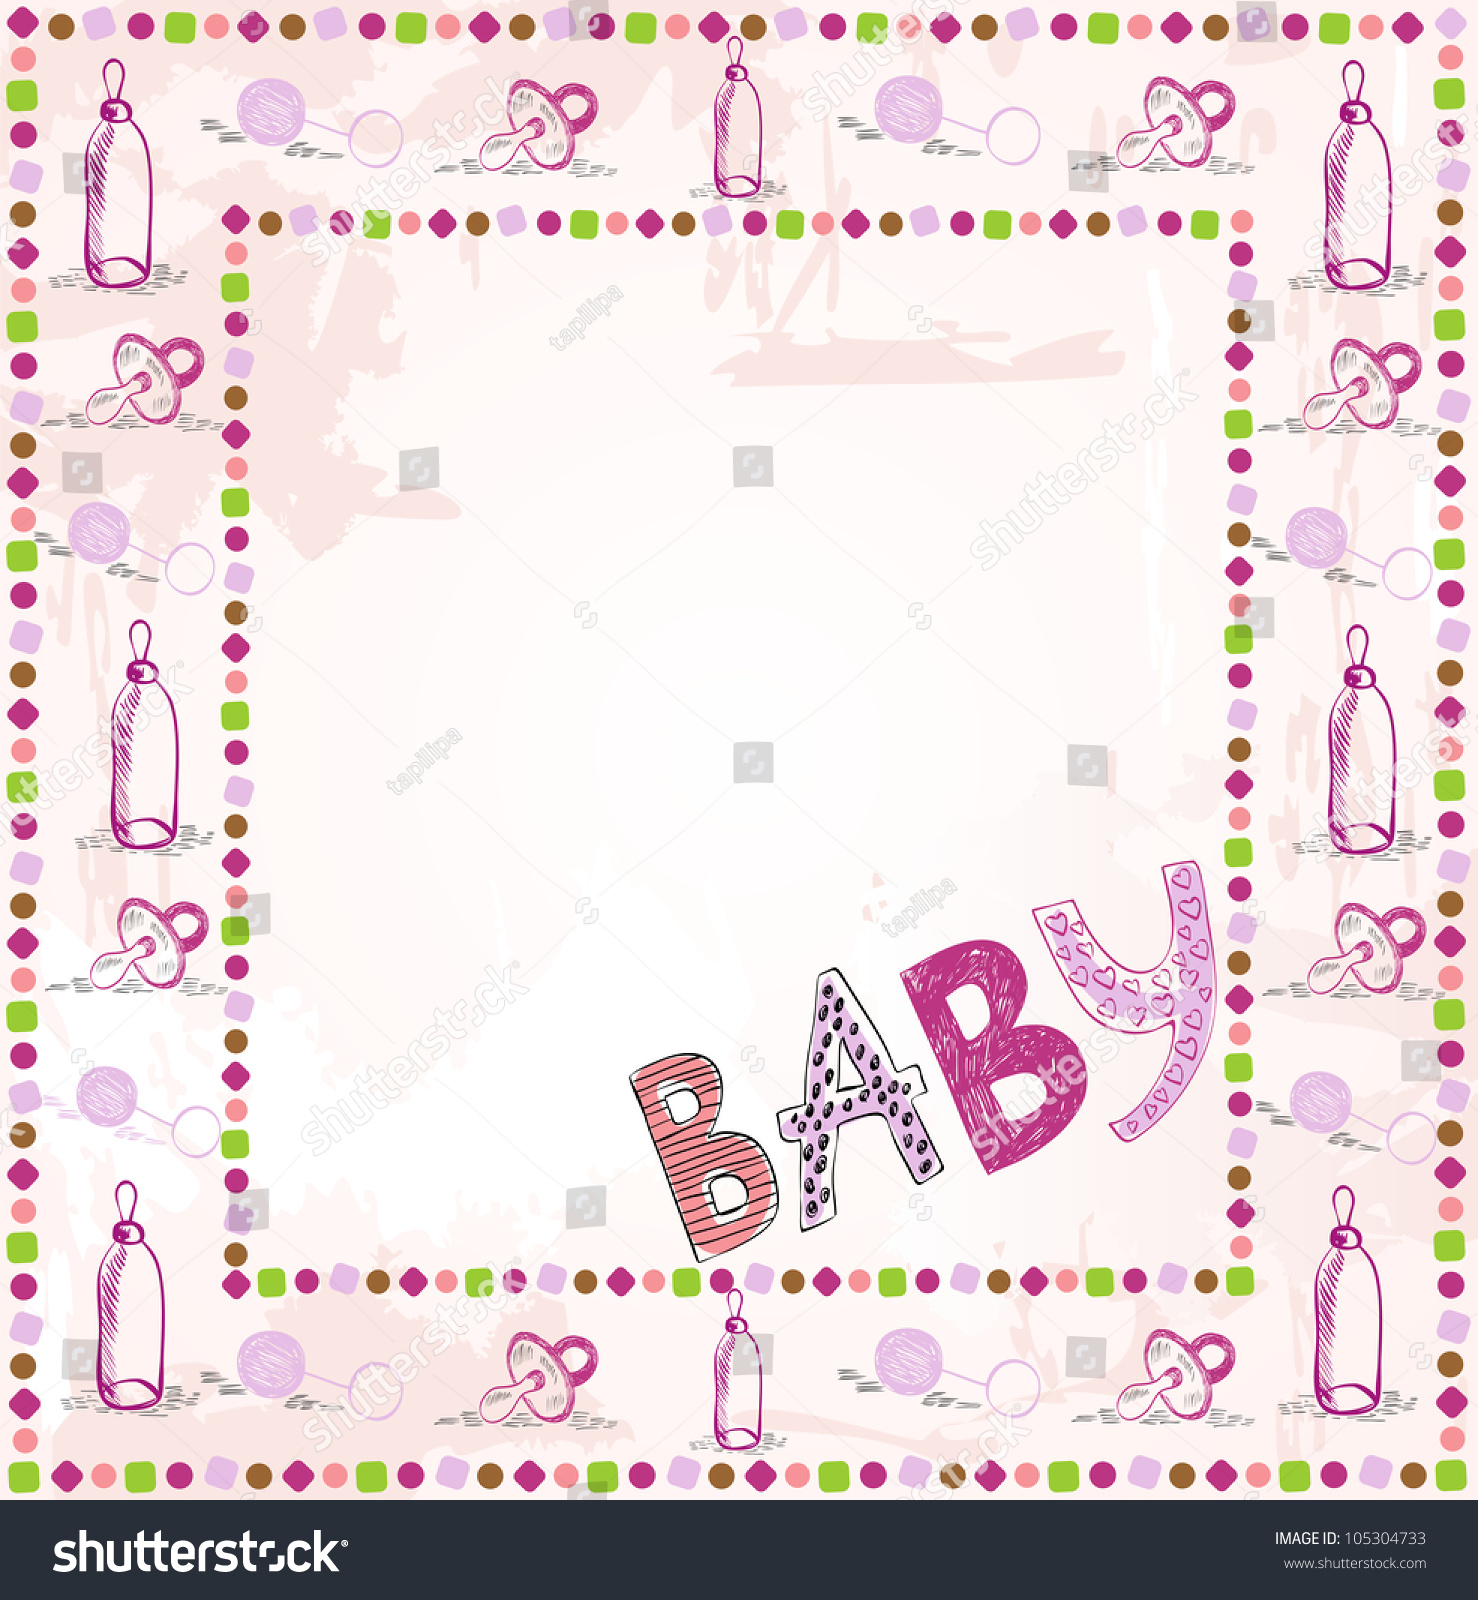 Scrapbook paper baby - Cute Scrapbook Paper For Girl With Baby Elements